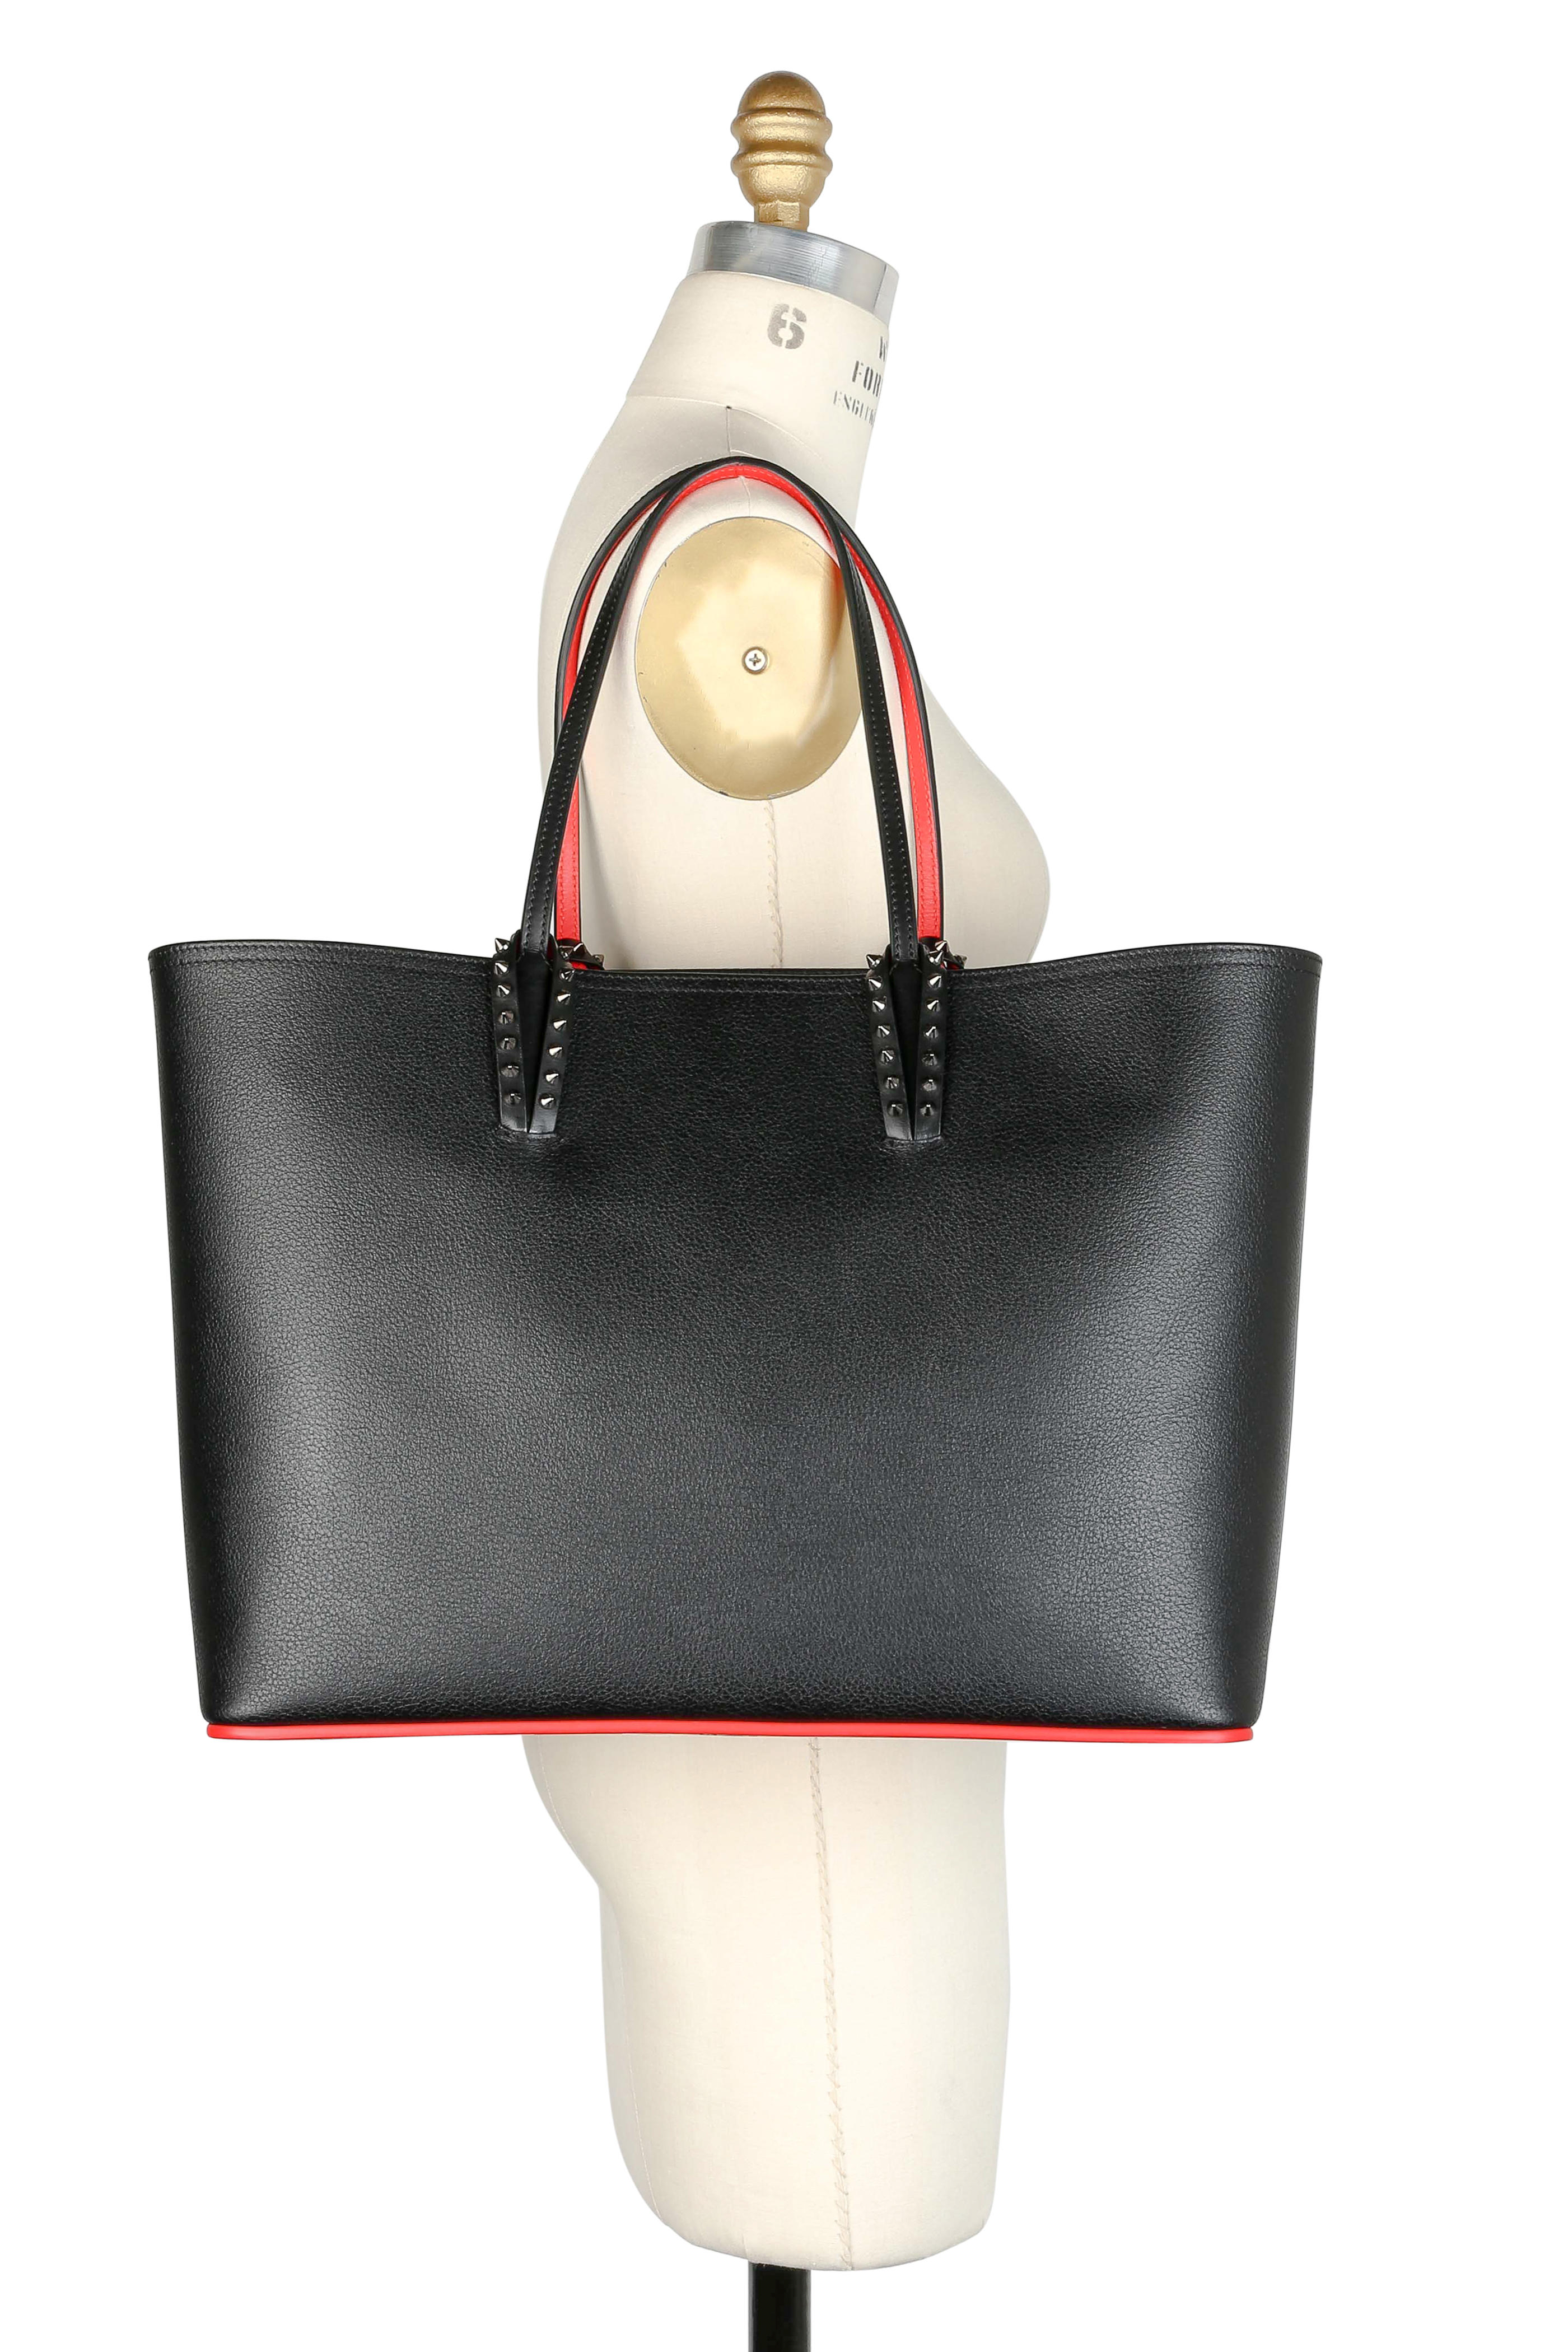 76ce5dec1cc Christian Louboutin - Cabata Black & Red Leather Studded Tote